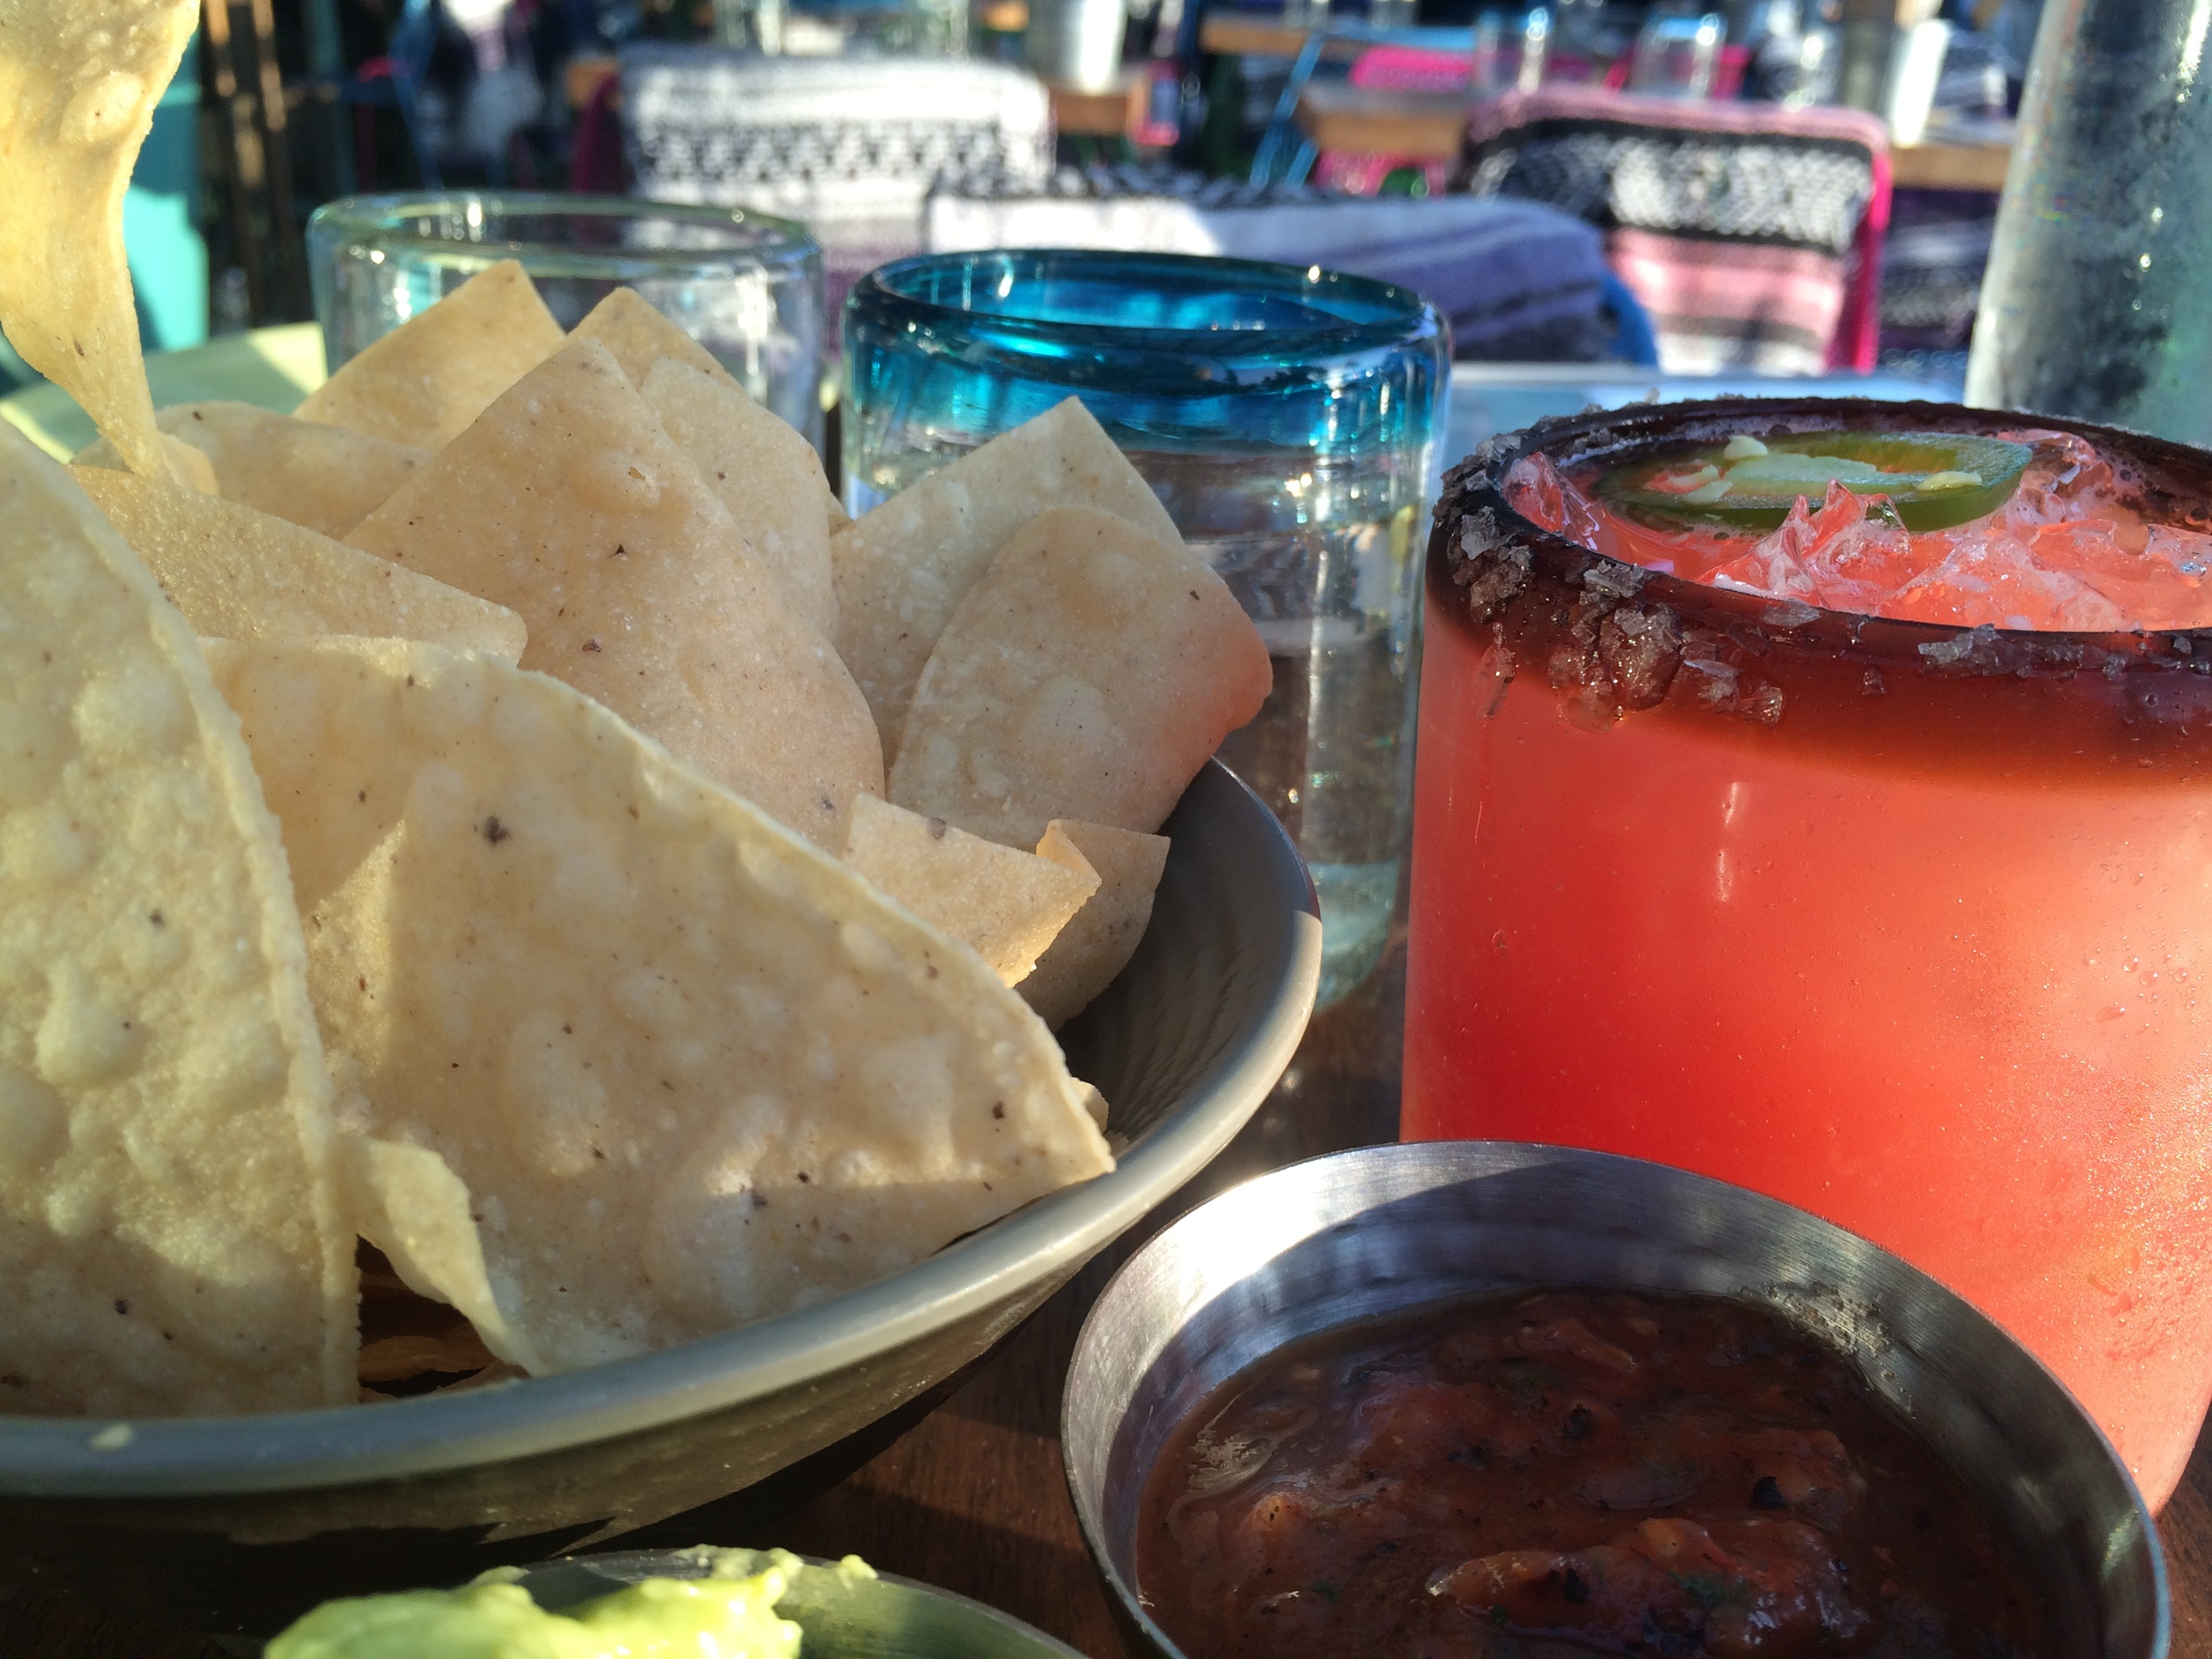 Guacamole and chips paired perfectly with the El Matador margarita (tequila, blood orange, jalapeño, rosemary and Campari).